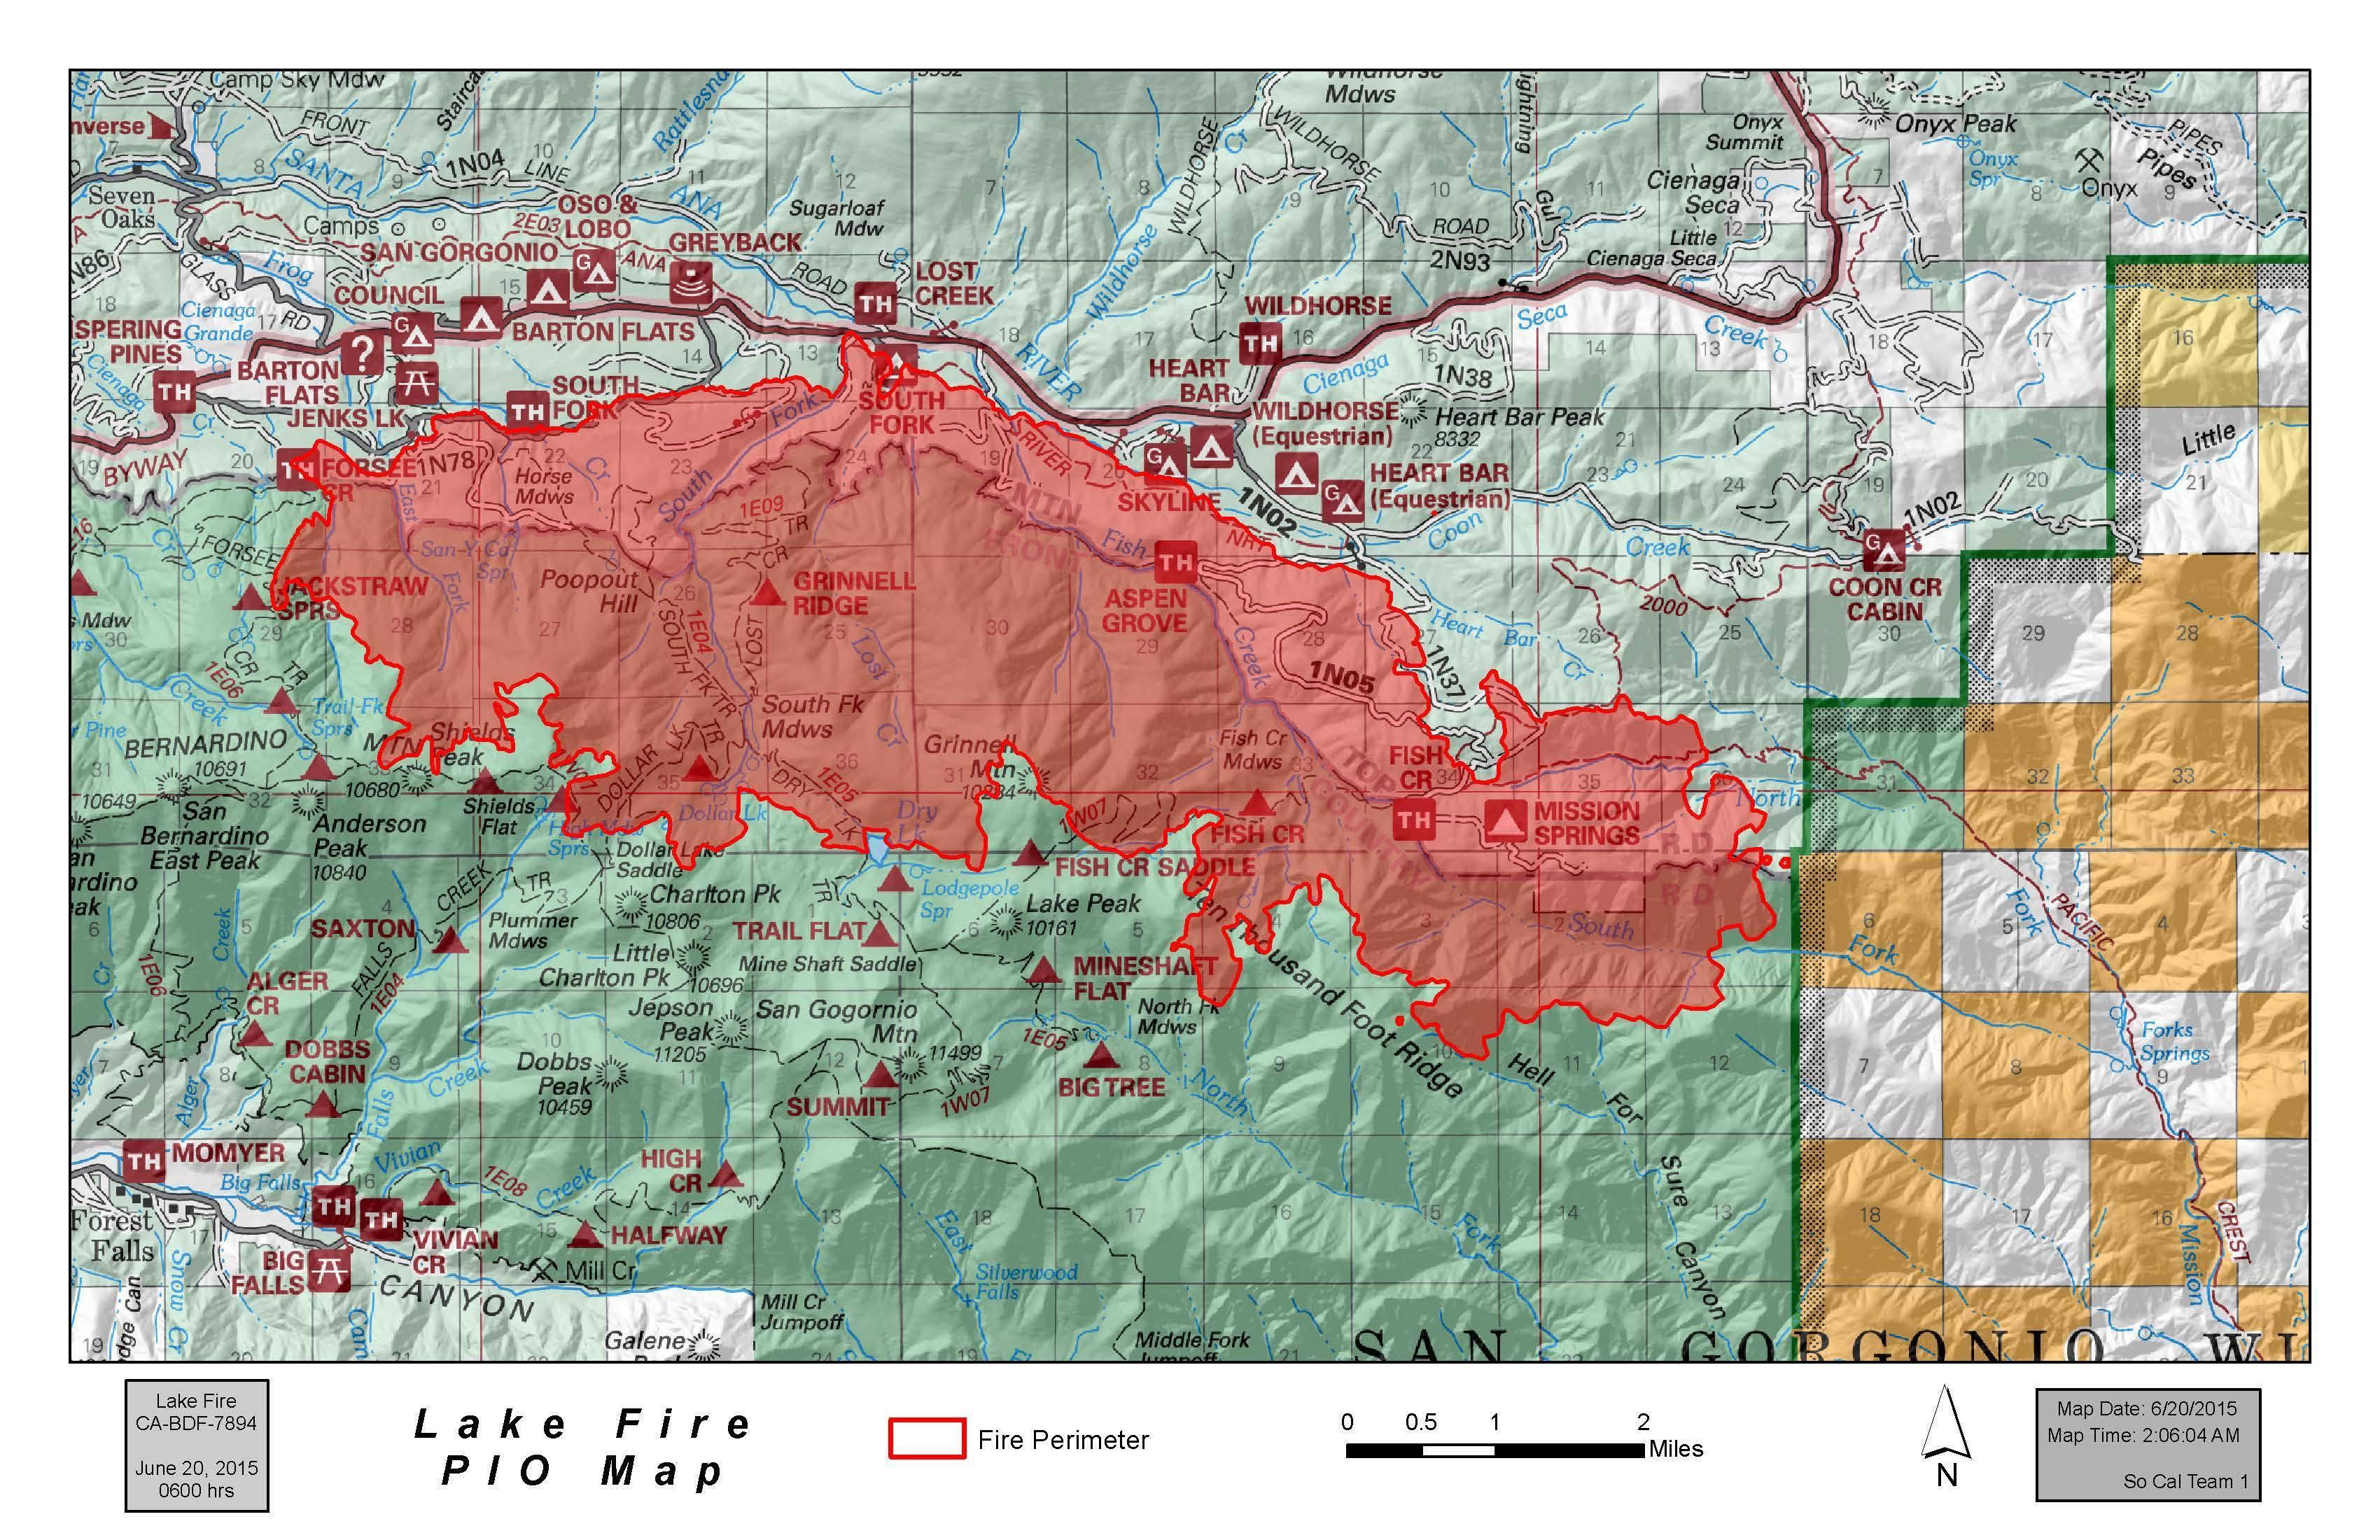 Big Bear Fire Map Socalmountains.com: Forums / FIRE DISCUSSION / Lake Fire (Big Bear